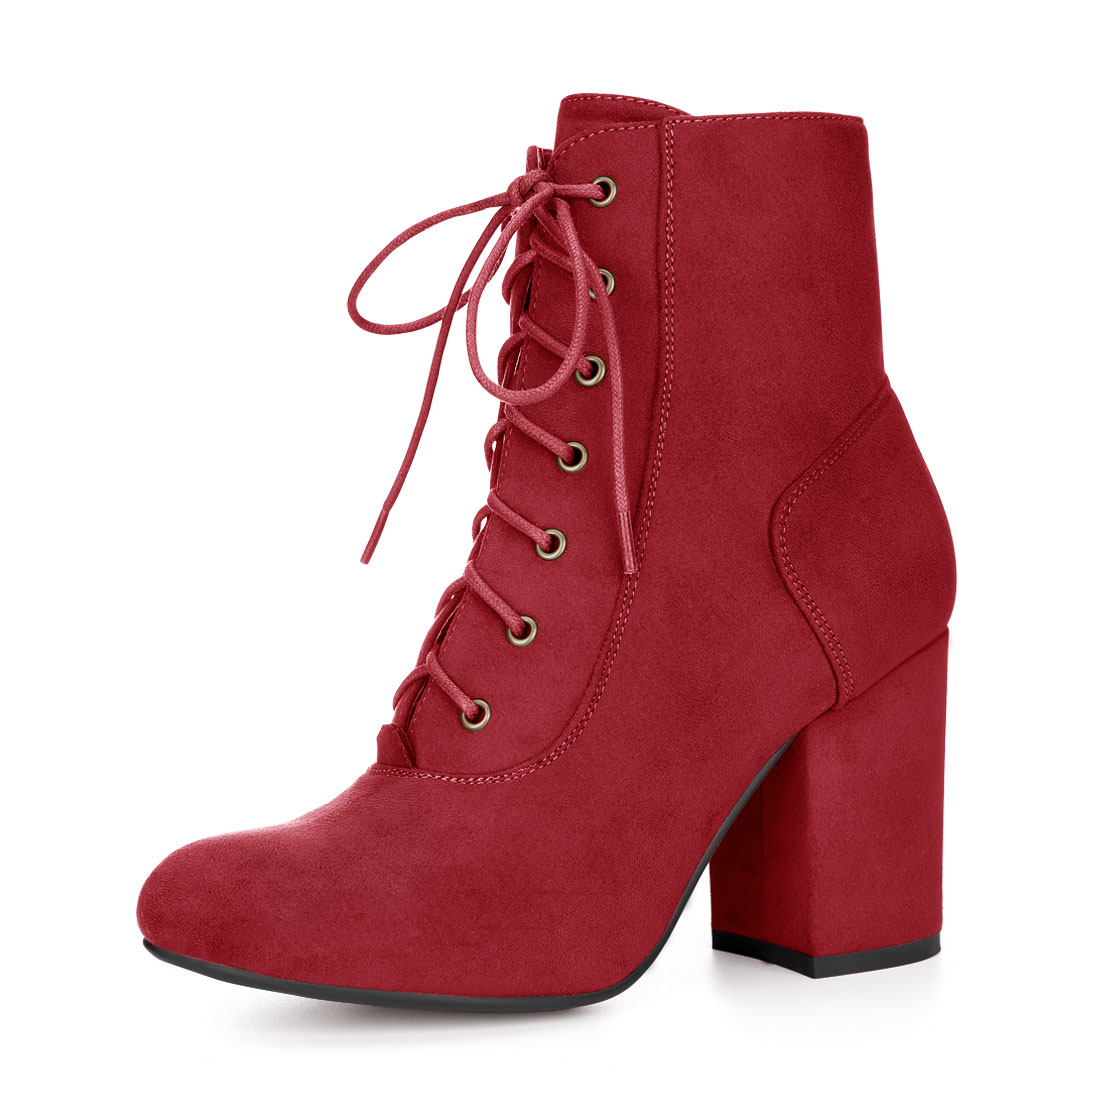 Allegra K Women Round Toe Chunky High Heel Lace Up Booties Red US 8